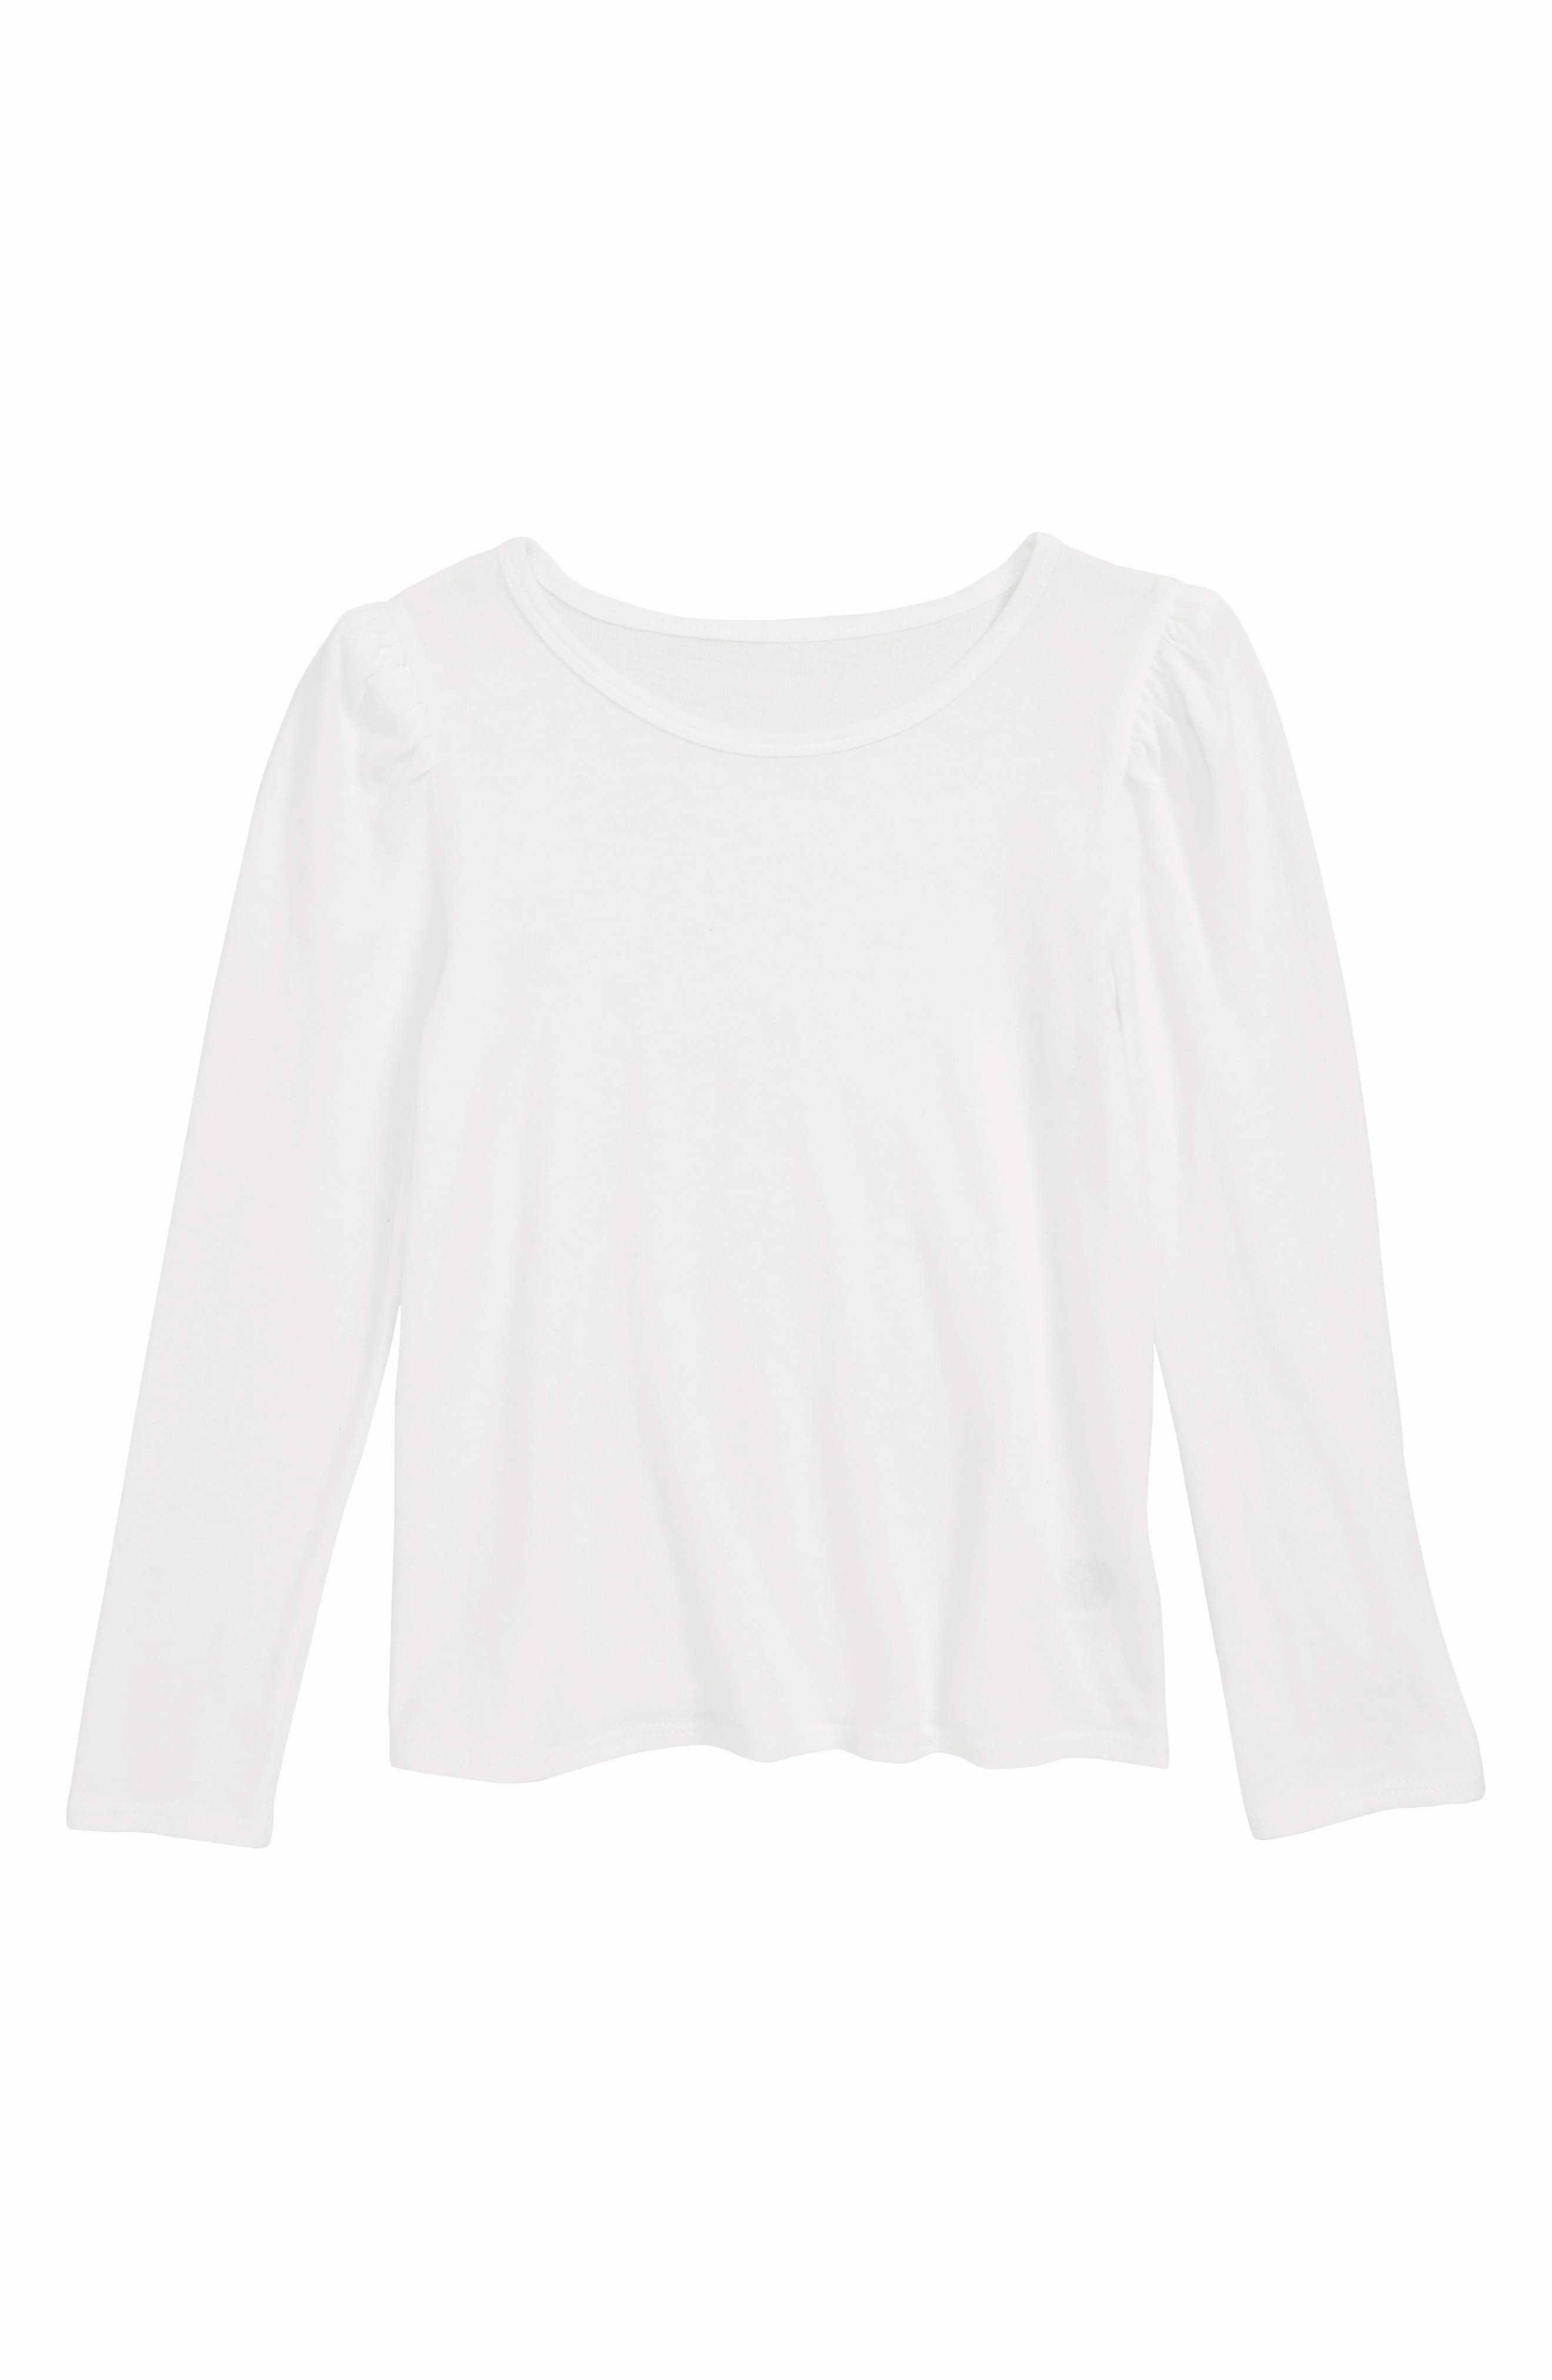 SOMETHING NAVY Puff Sleeve Knit Top, Main, color, WHITE